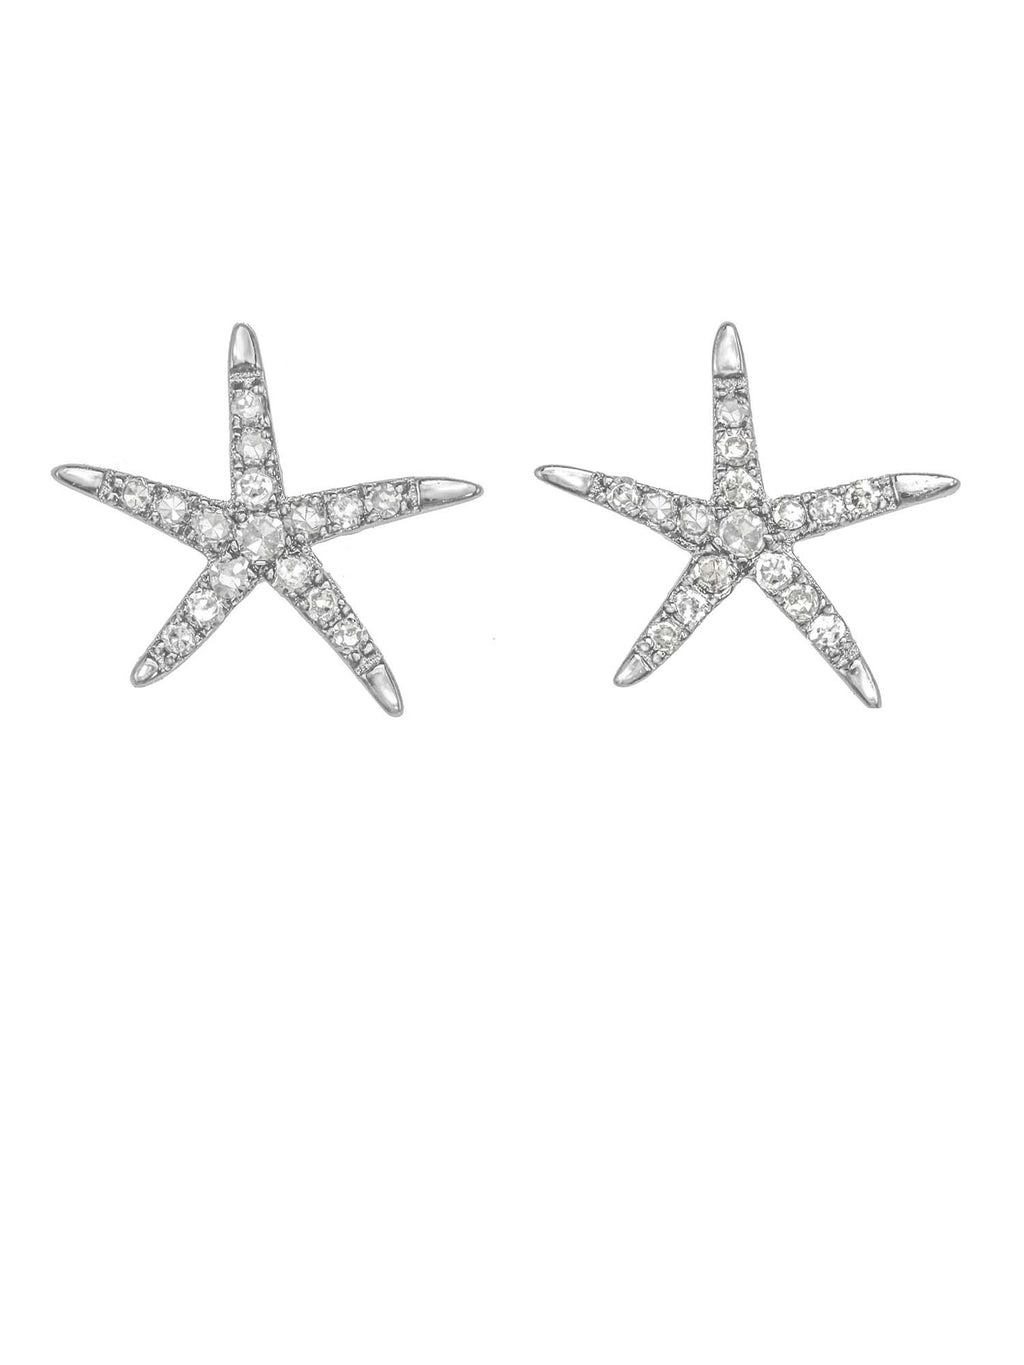 Margo Morrison Diamond Starfish Stud Earrings